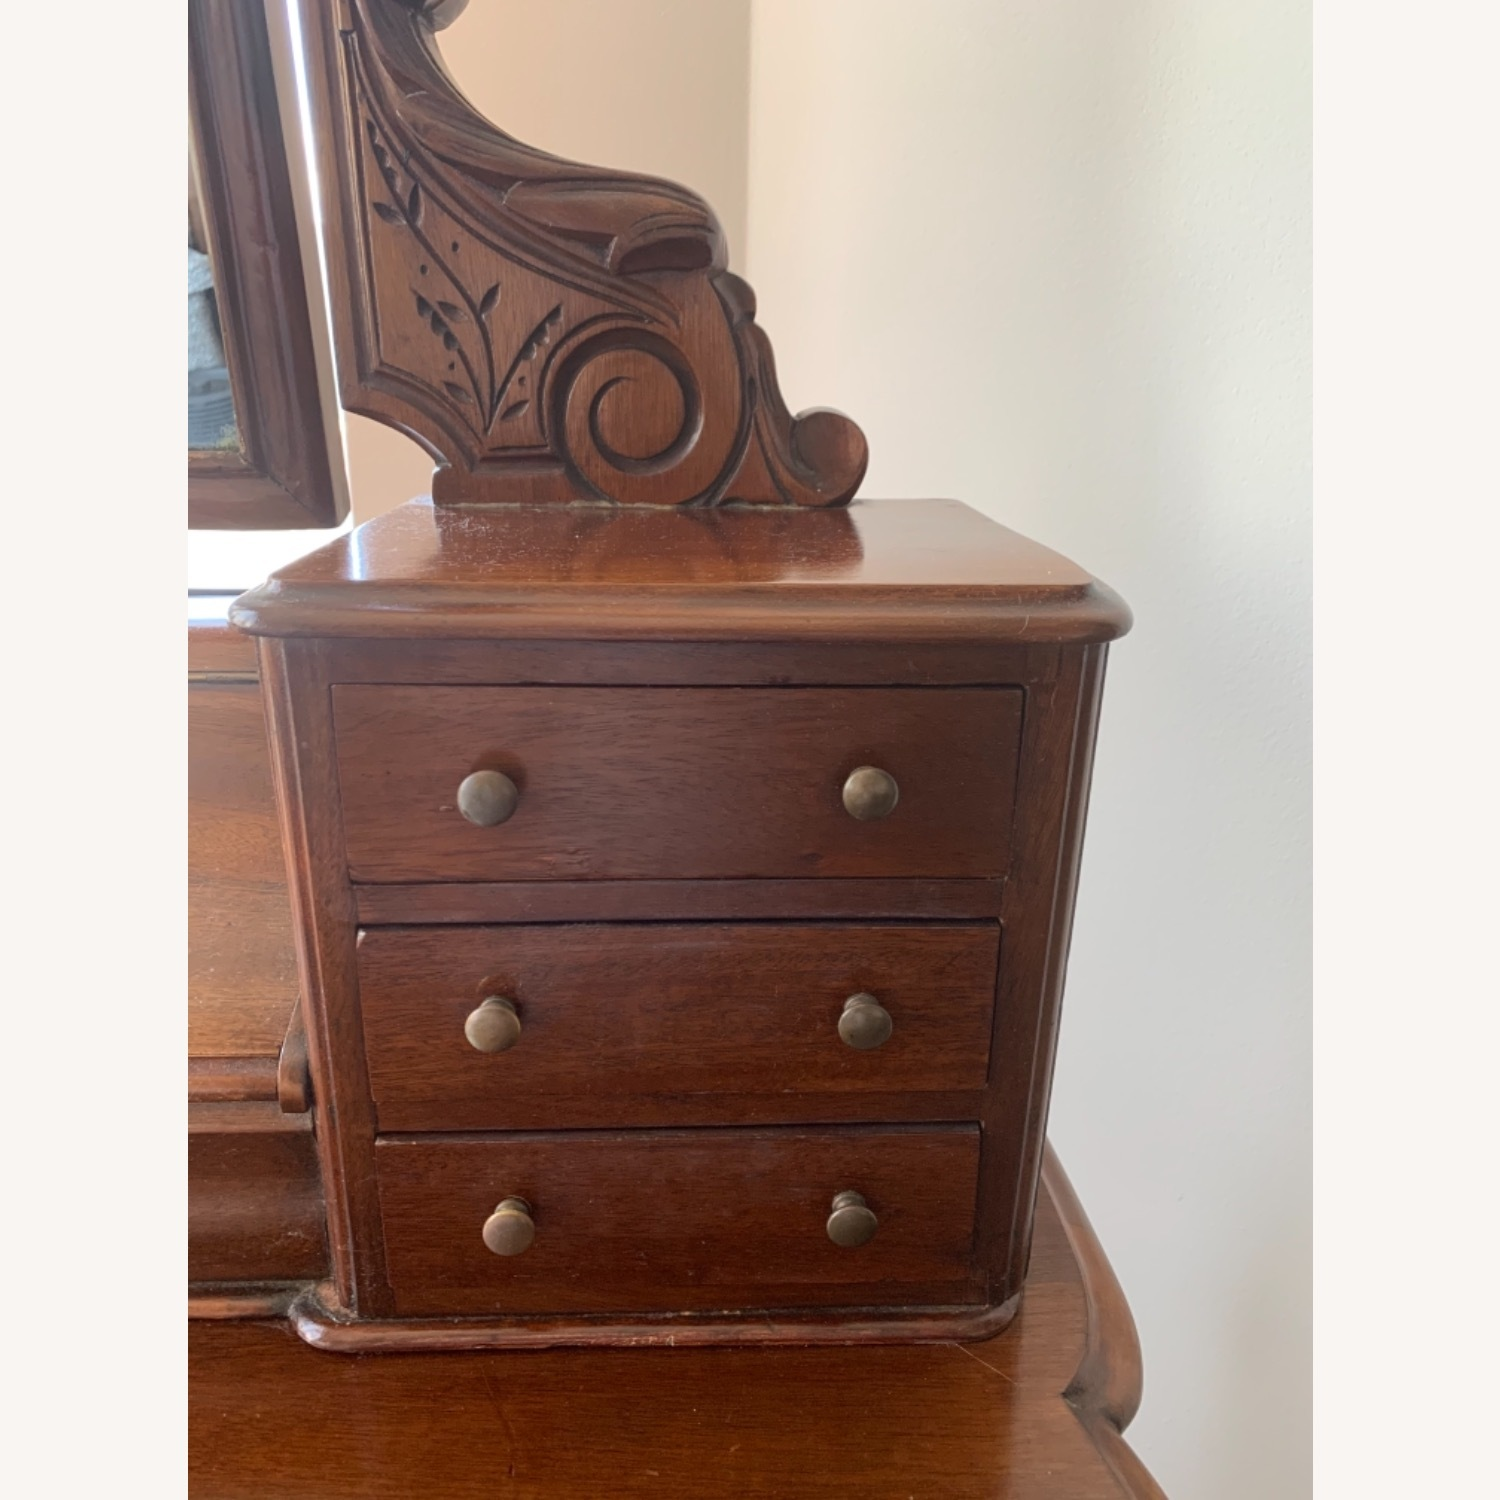 Victorian Antique Vanity Dressing Table and Stool - image-11